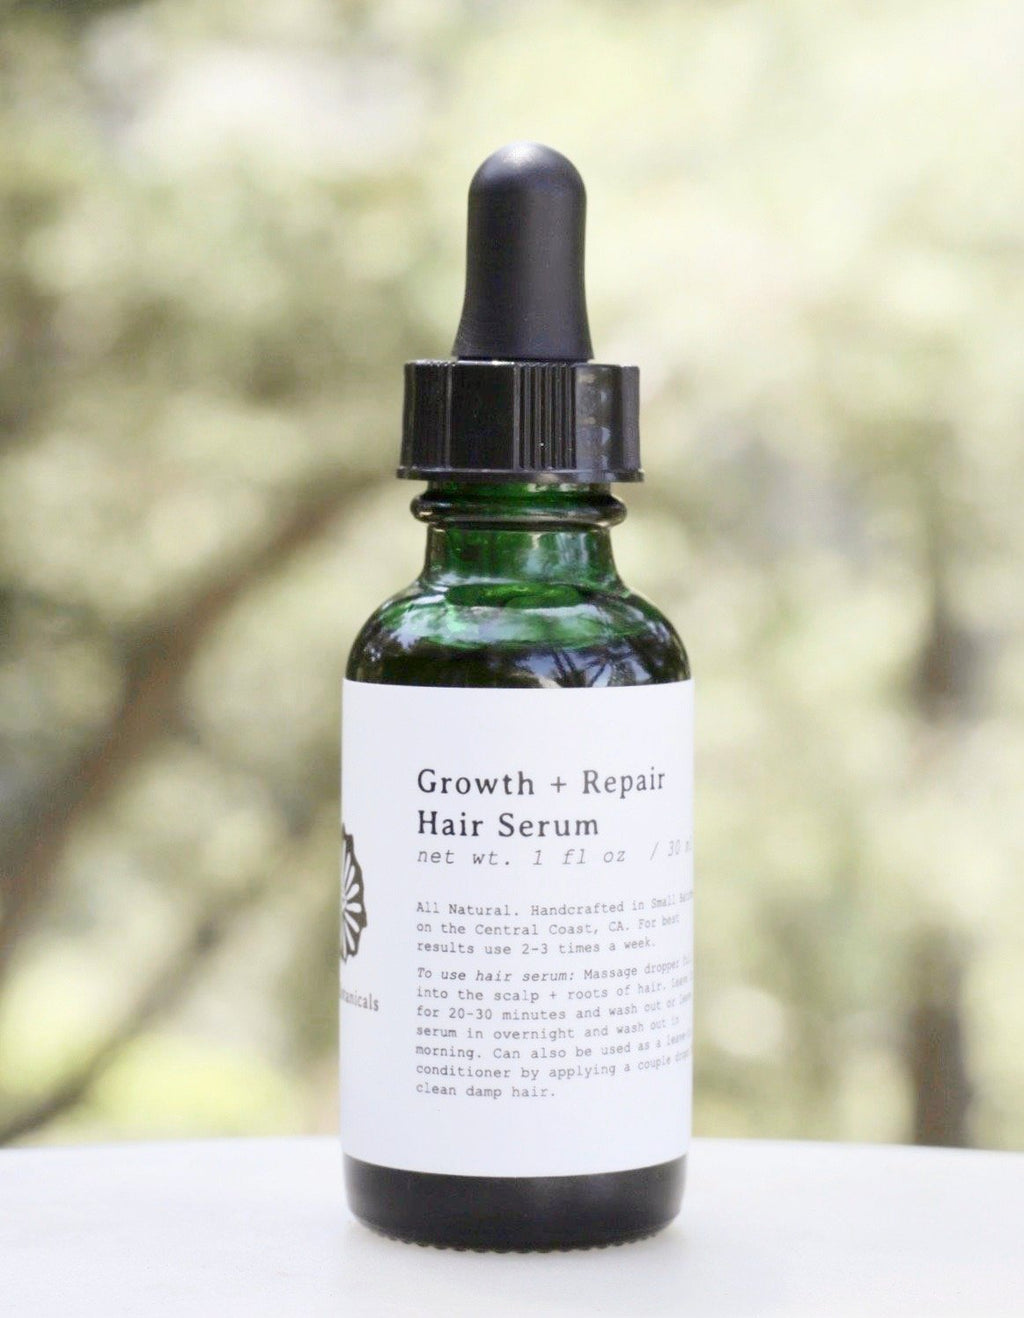 Growth + Repair Hair Serum